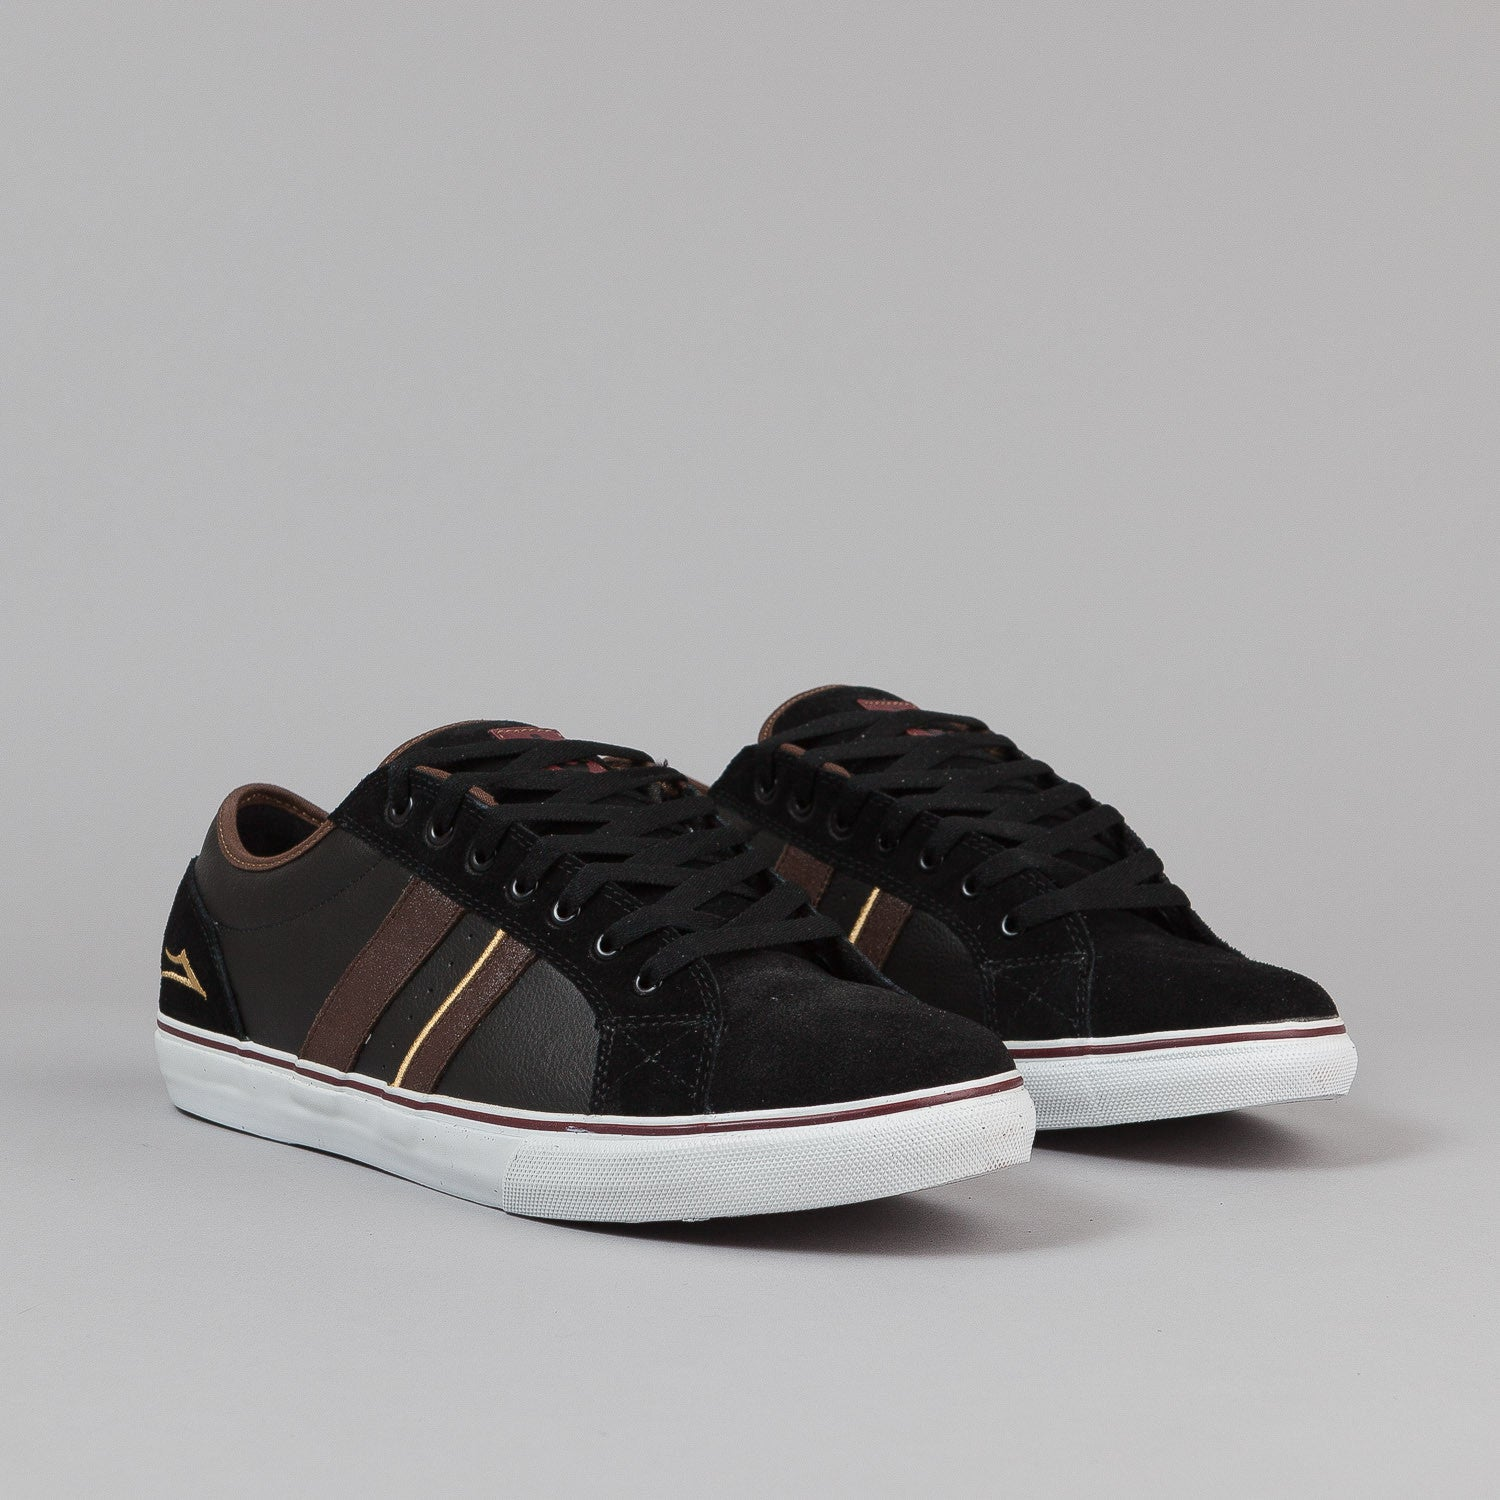 Lakai MJ-2 Select LTD Shoes - Black / Chocolate Leather